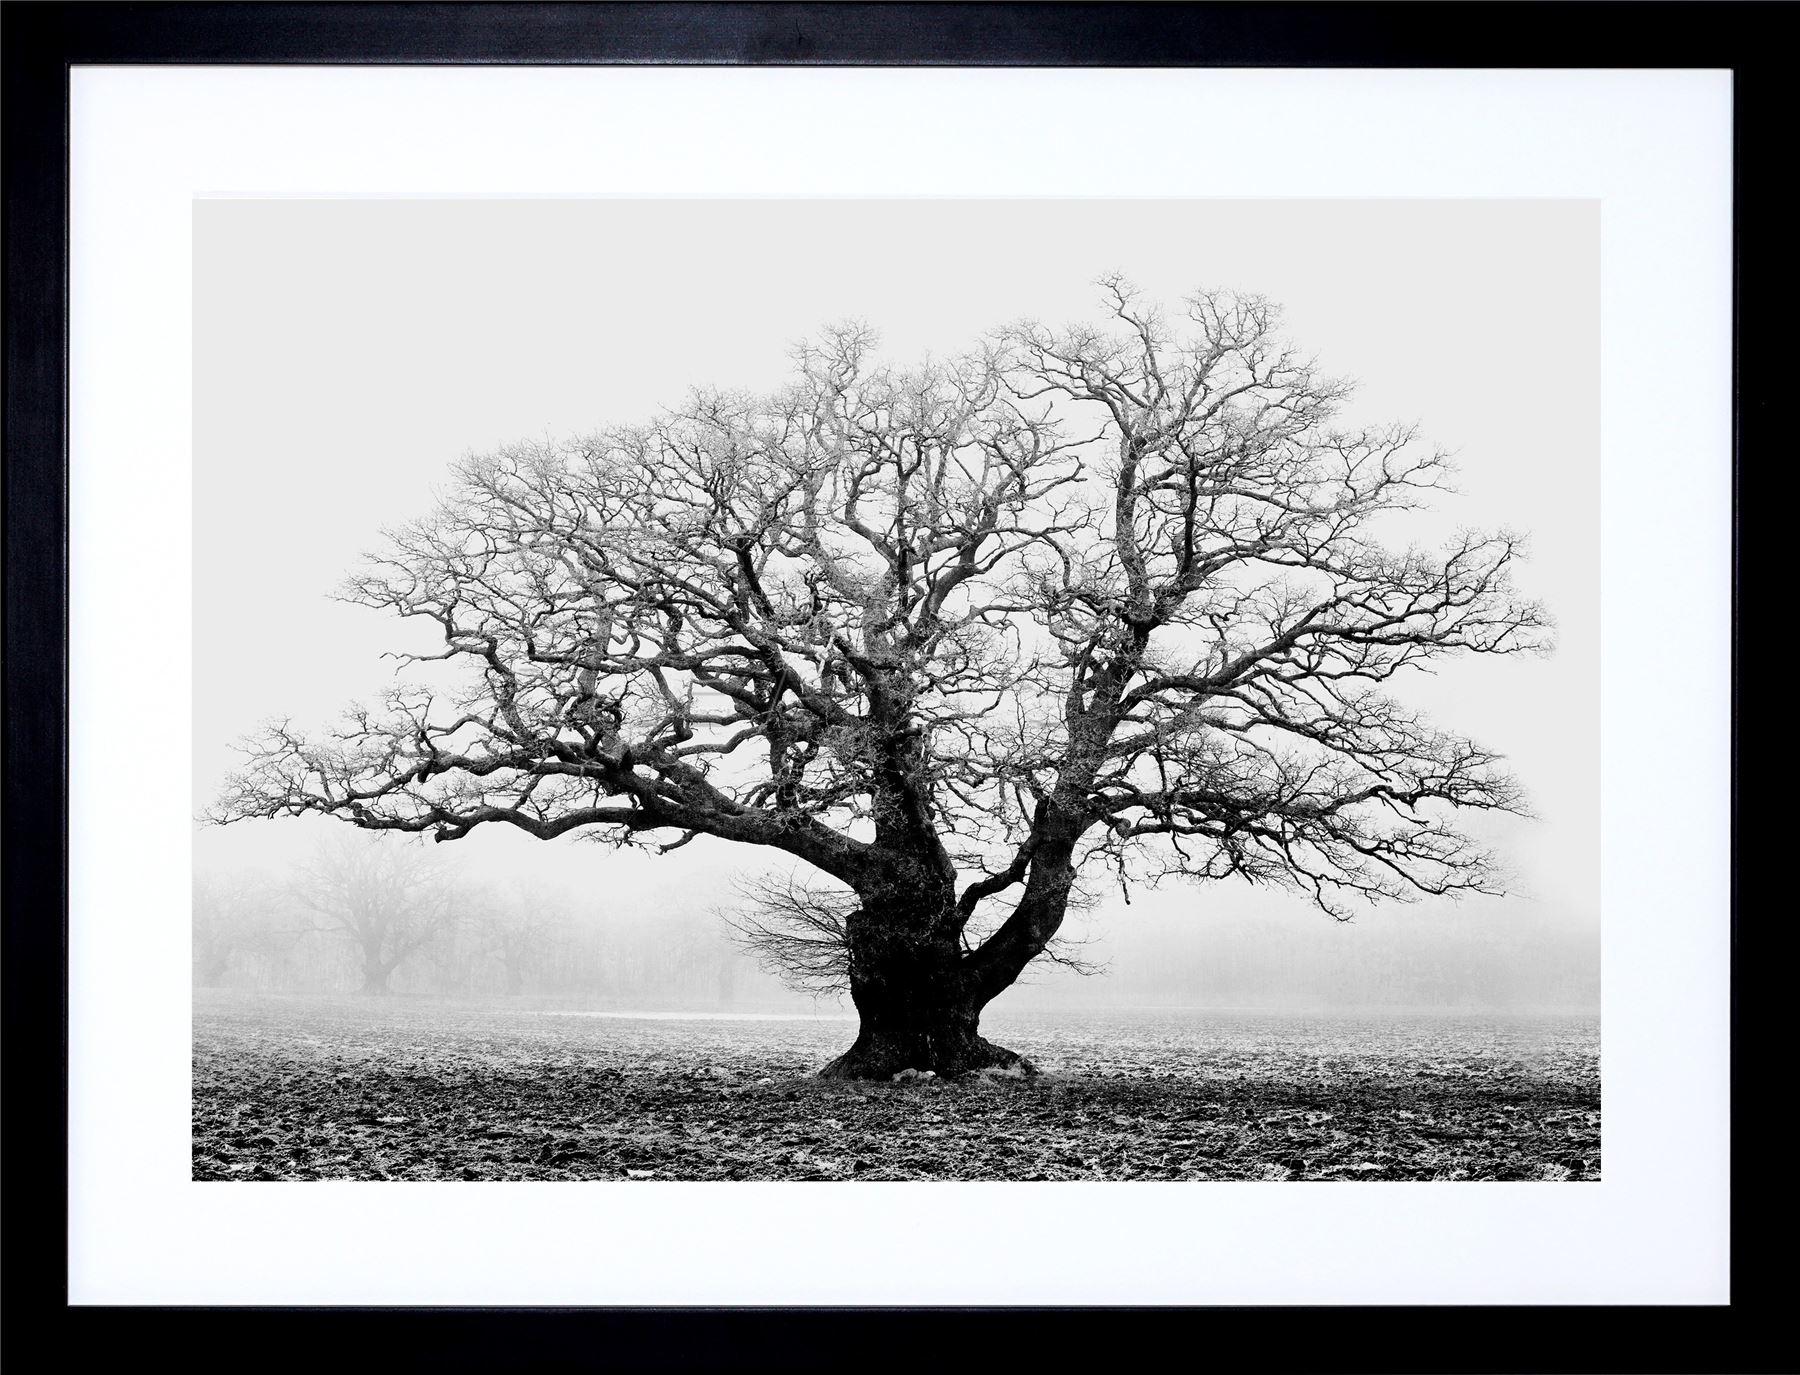 Old Oak Tree Black White Mist Fog Photo Framed Art Print Picture Pertaining To 2018 Black Framed Art Prints (Gallery 1 of 15)